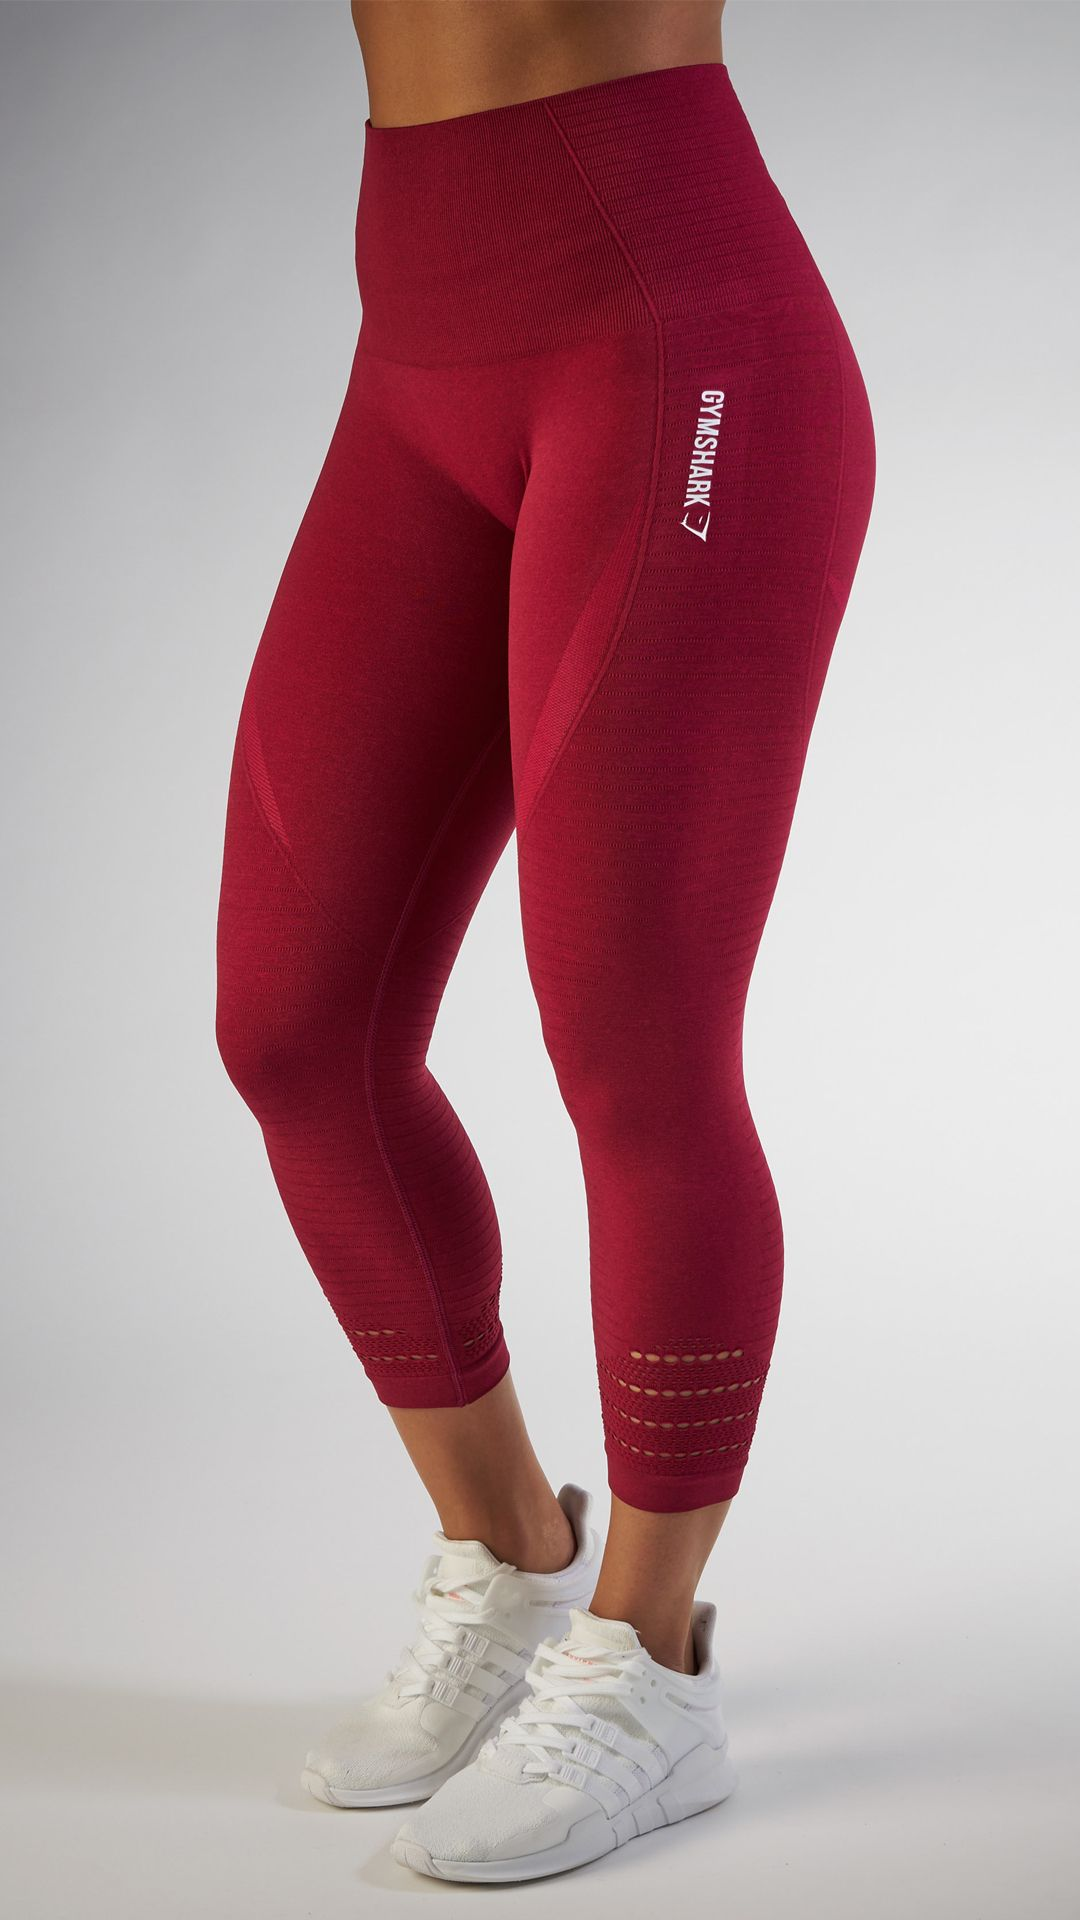 5f51f9f516cd1 With their stunning and form fitting shape, the Seamless High Waisted  Cropped leggings in Beet are beautifully different.